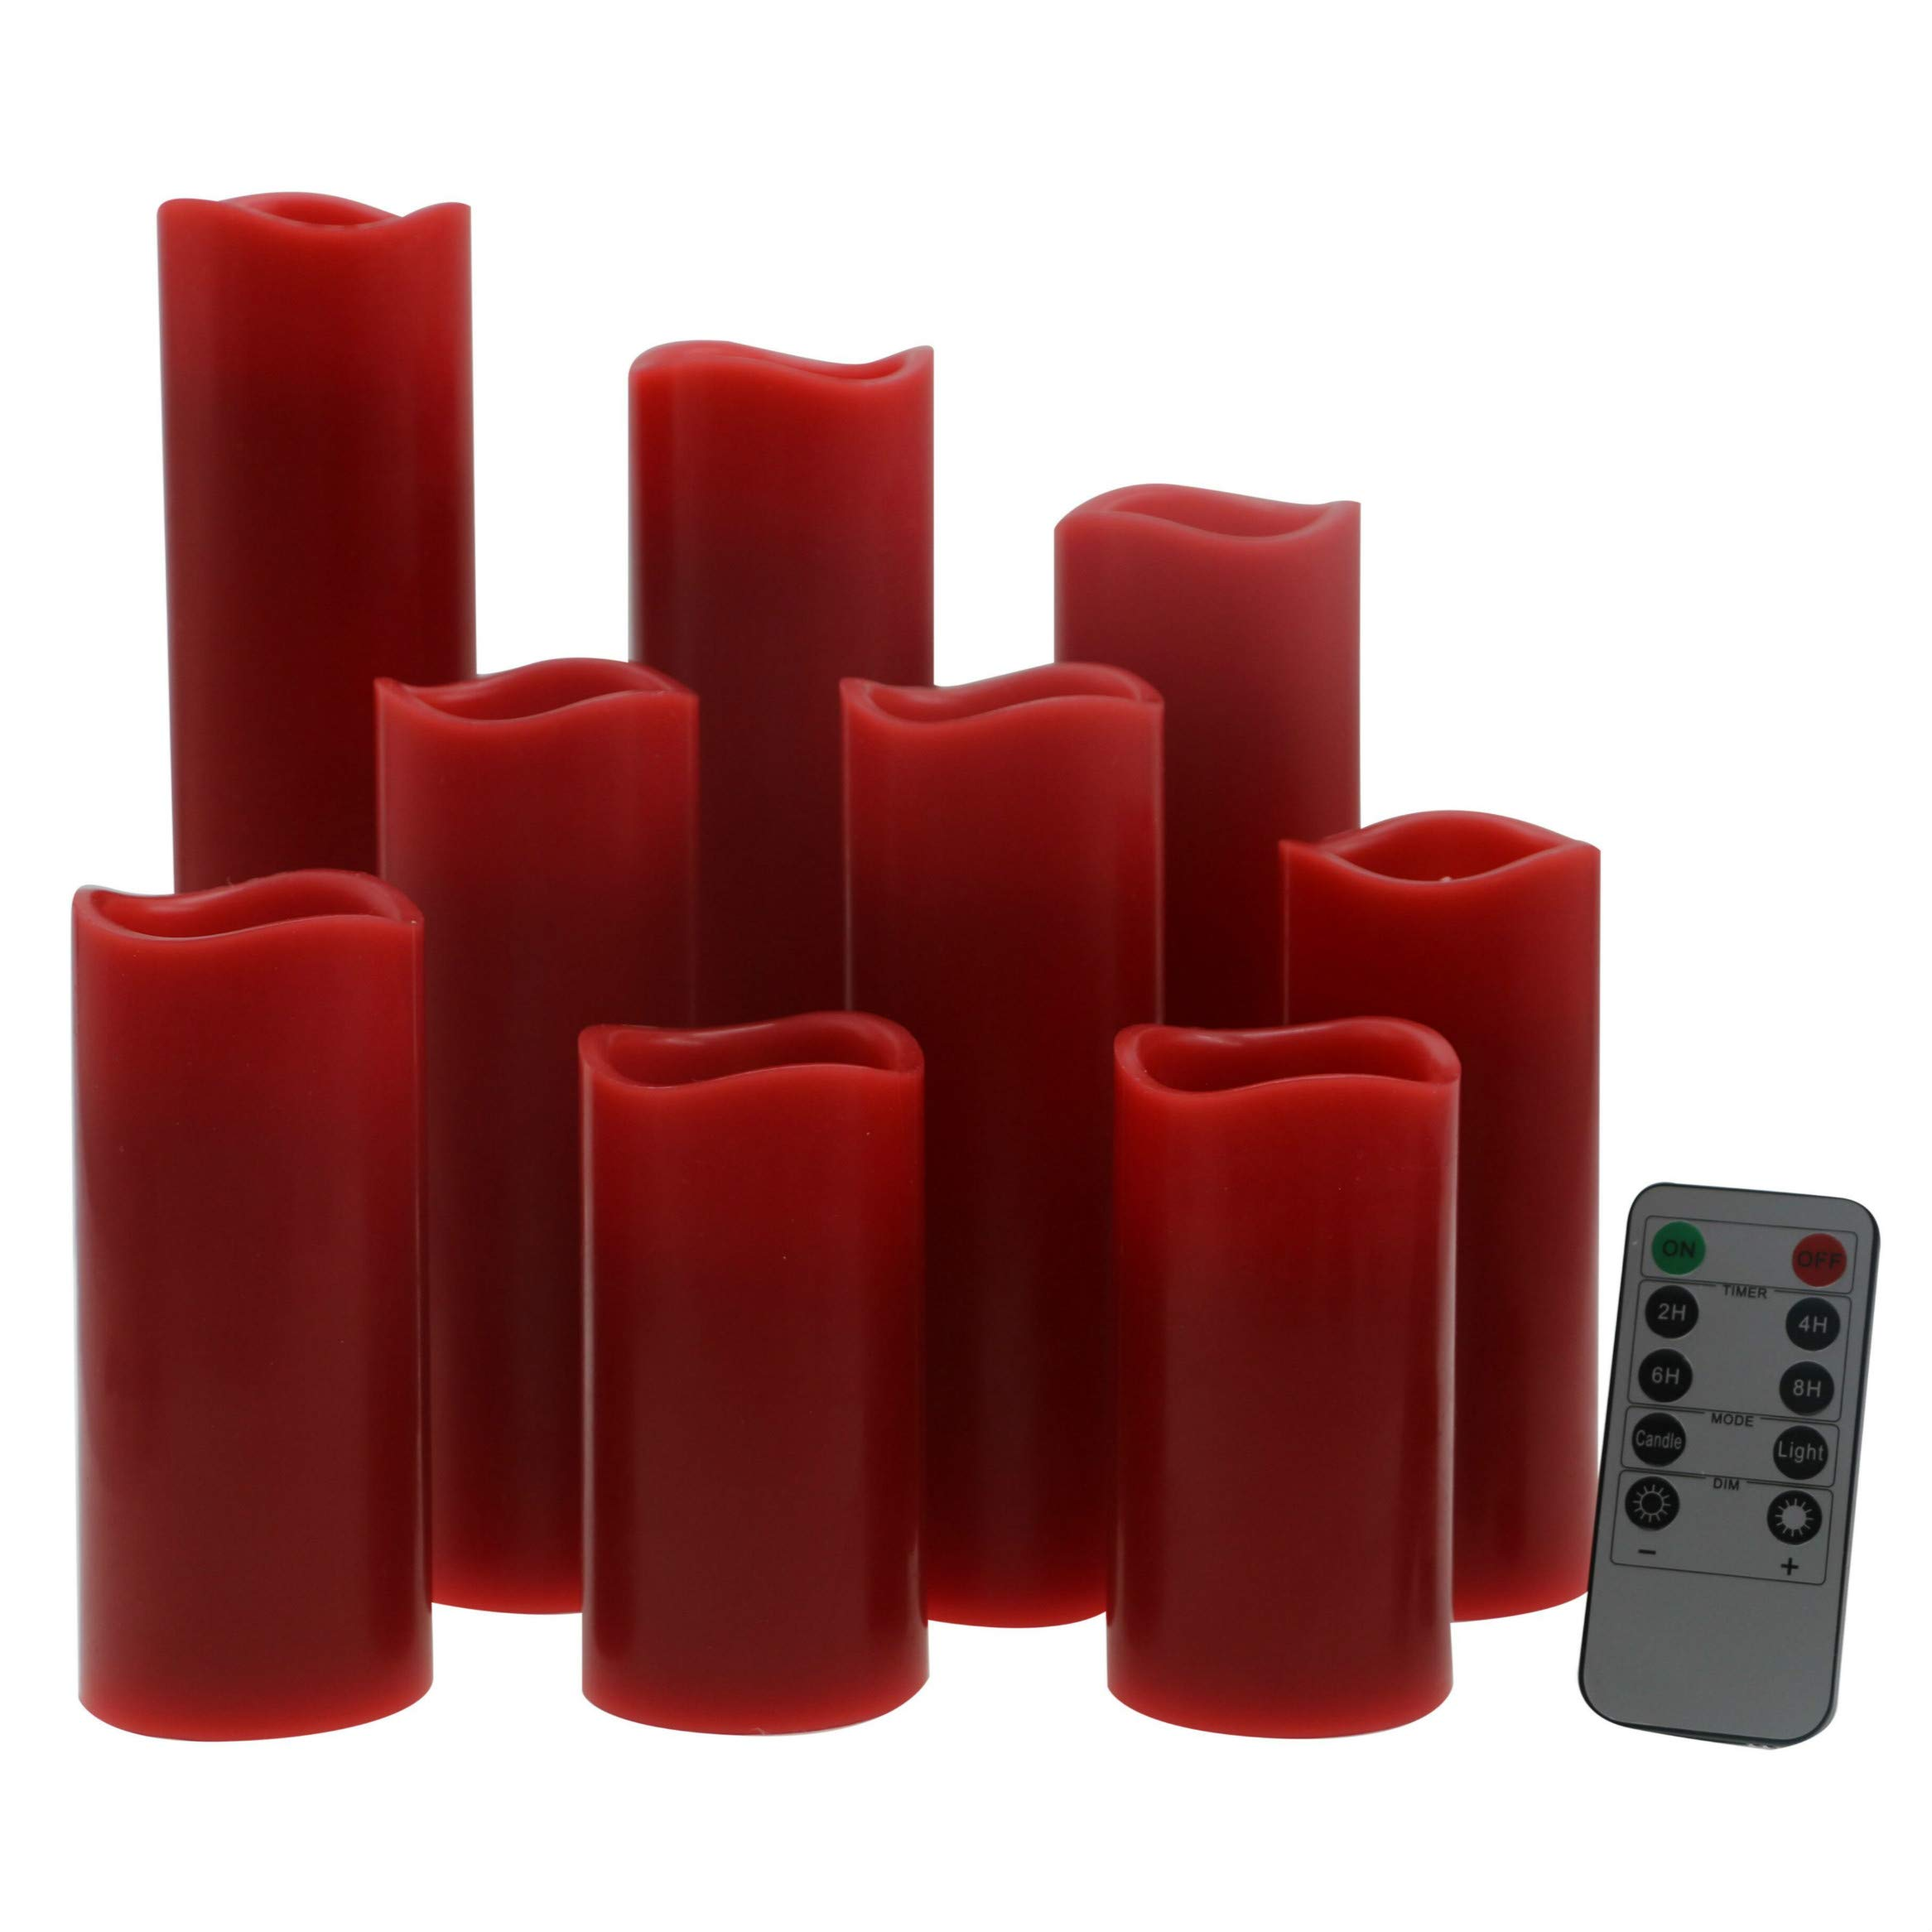 Kitch Aroma Red Flameless Pillar Flickering LED Candles with Remote for Home Decor (red) by Kitch Aroma (Image #1)